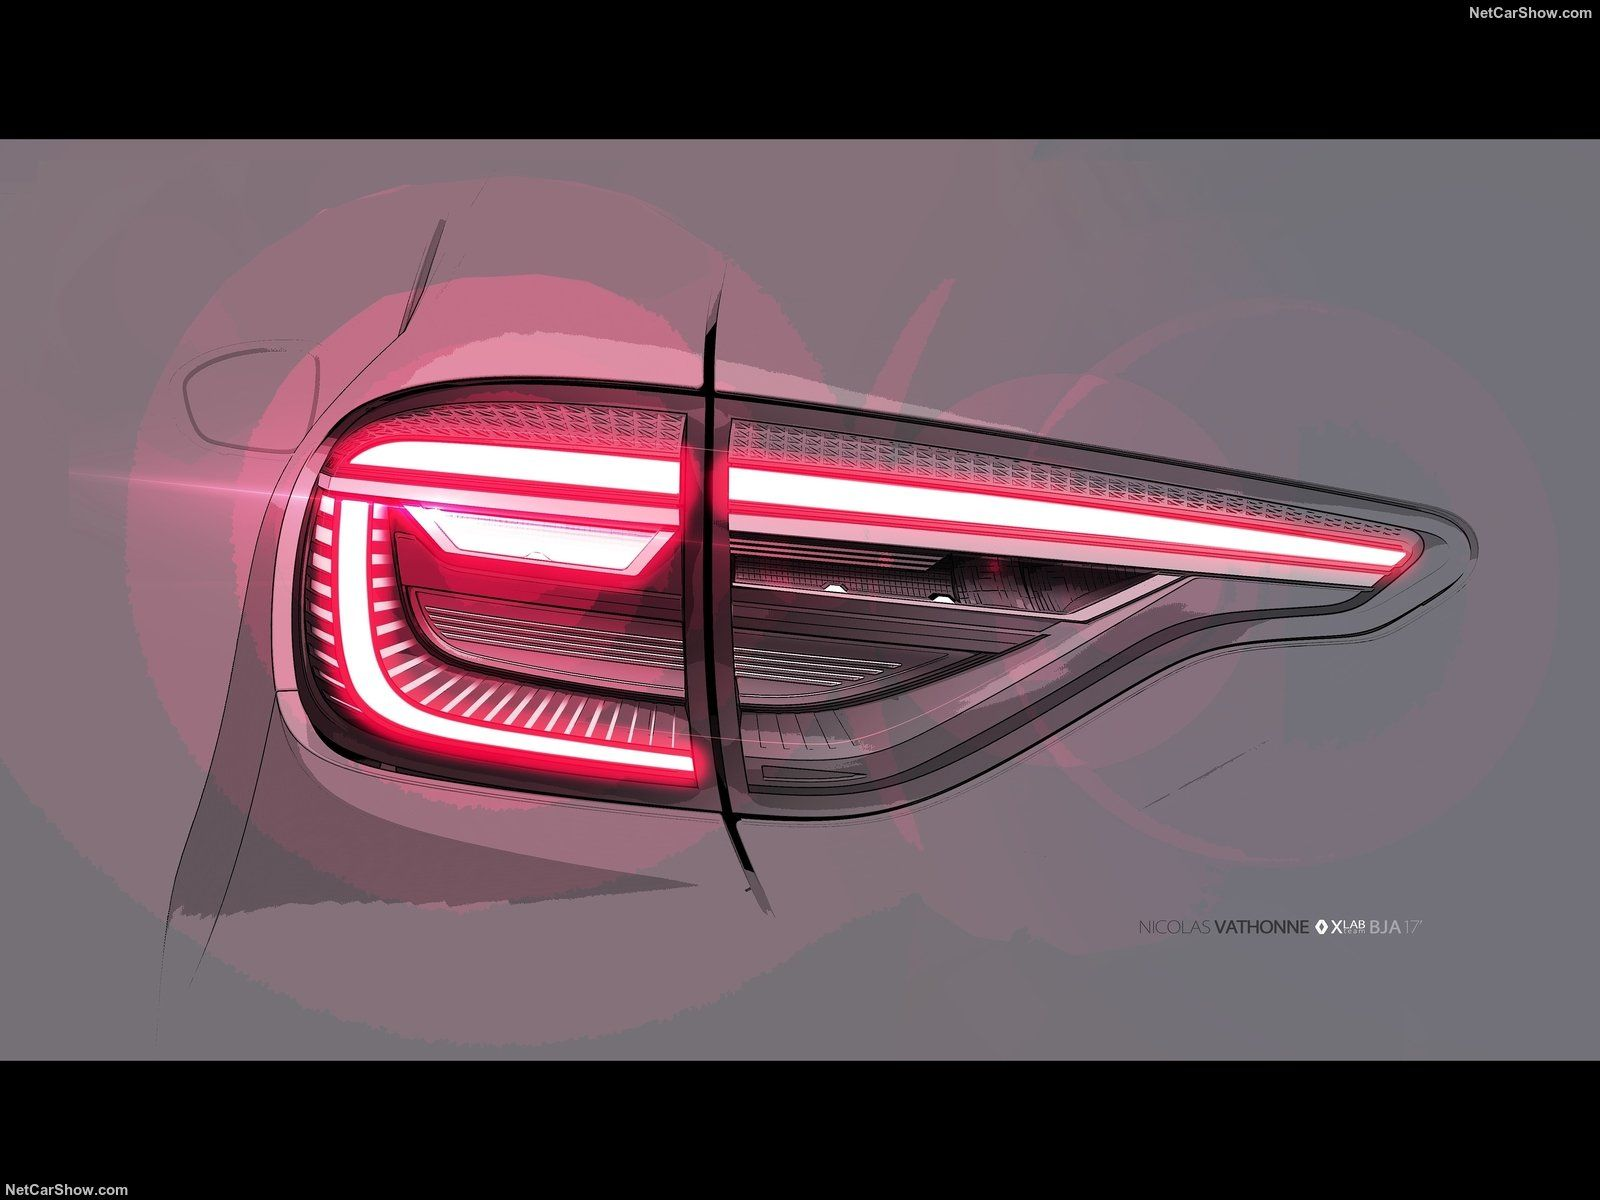 2020 Renault Clio Taillight Design Sketch Car Design Sketch